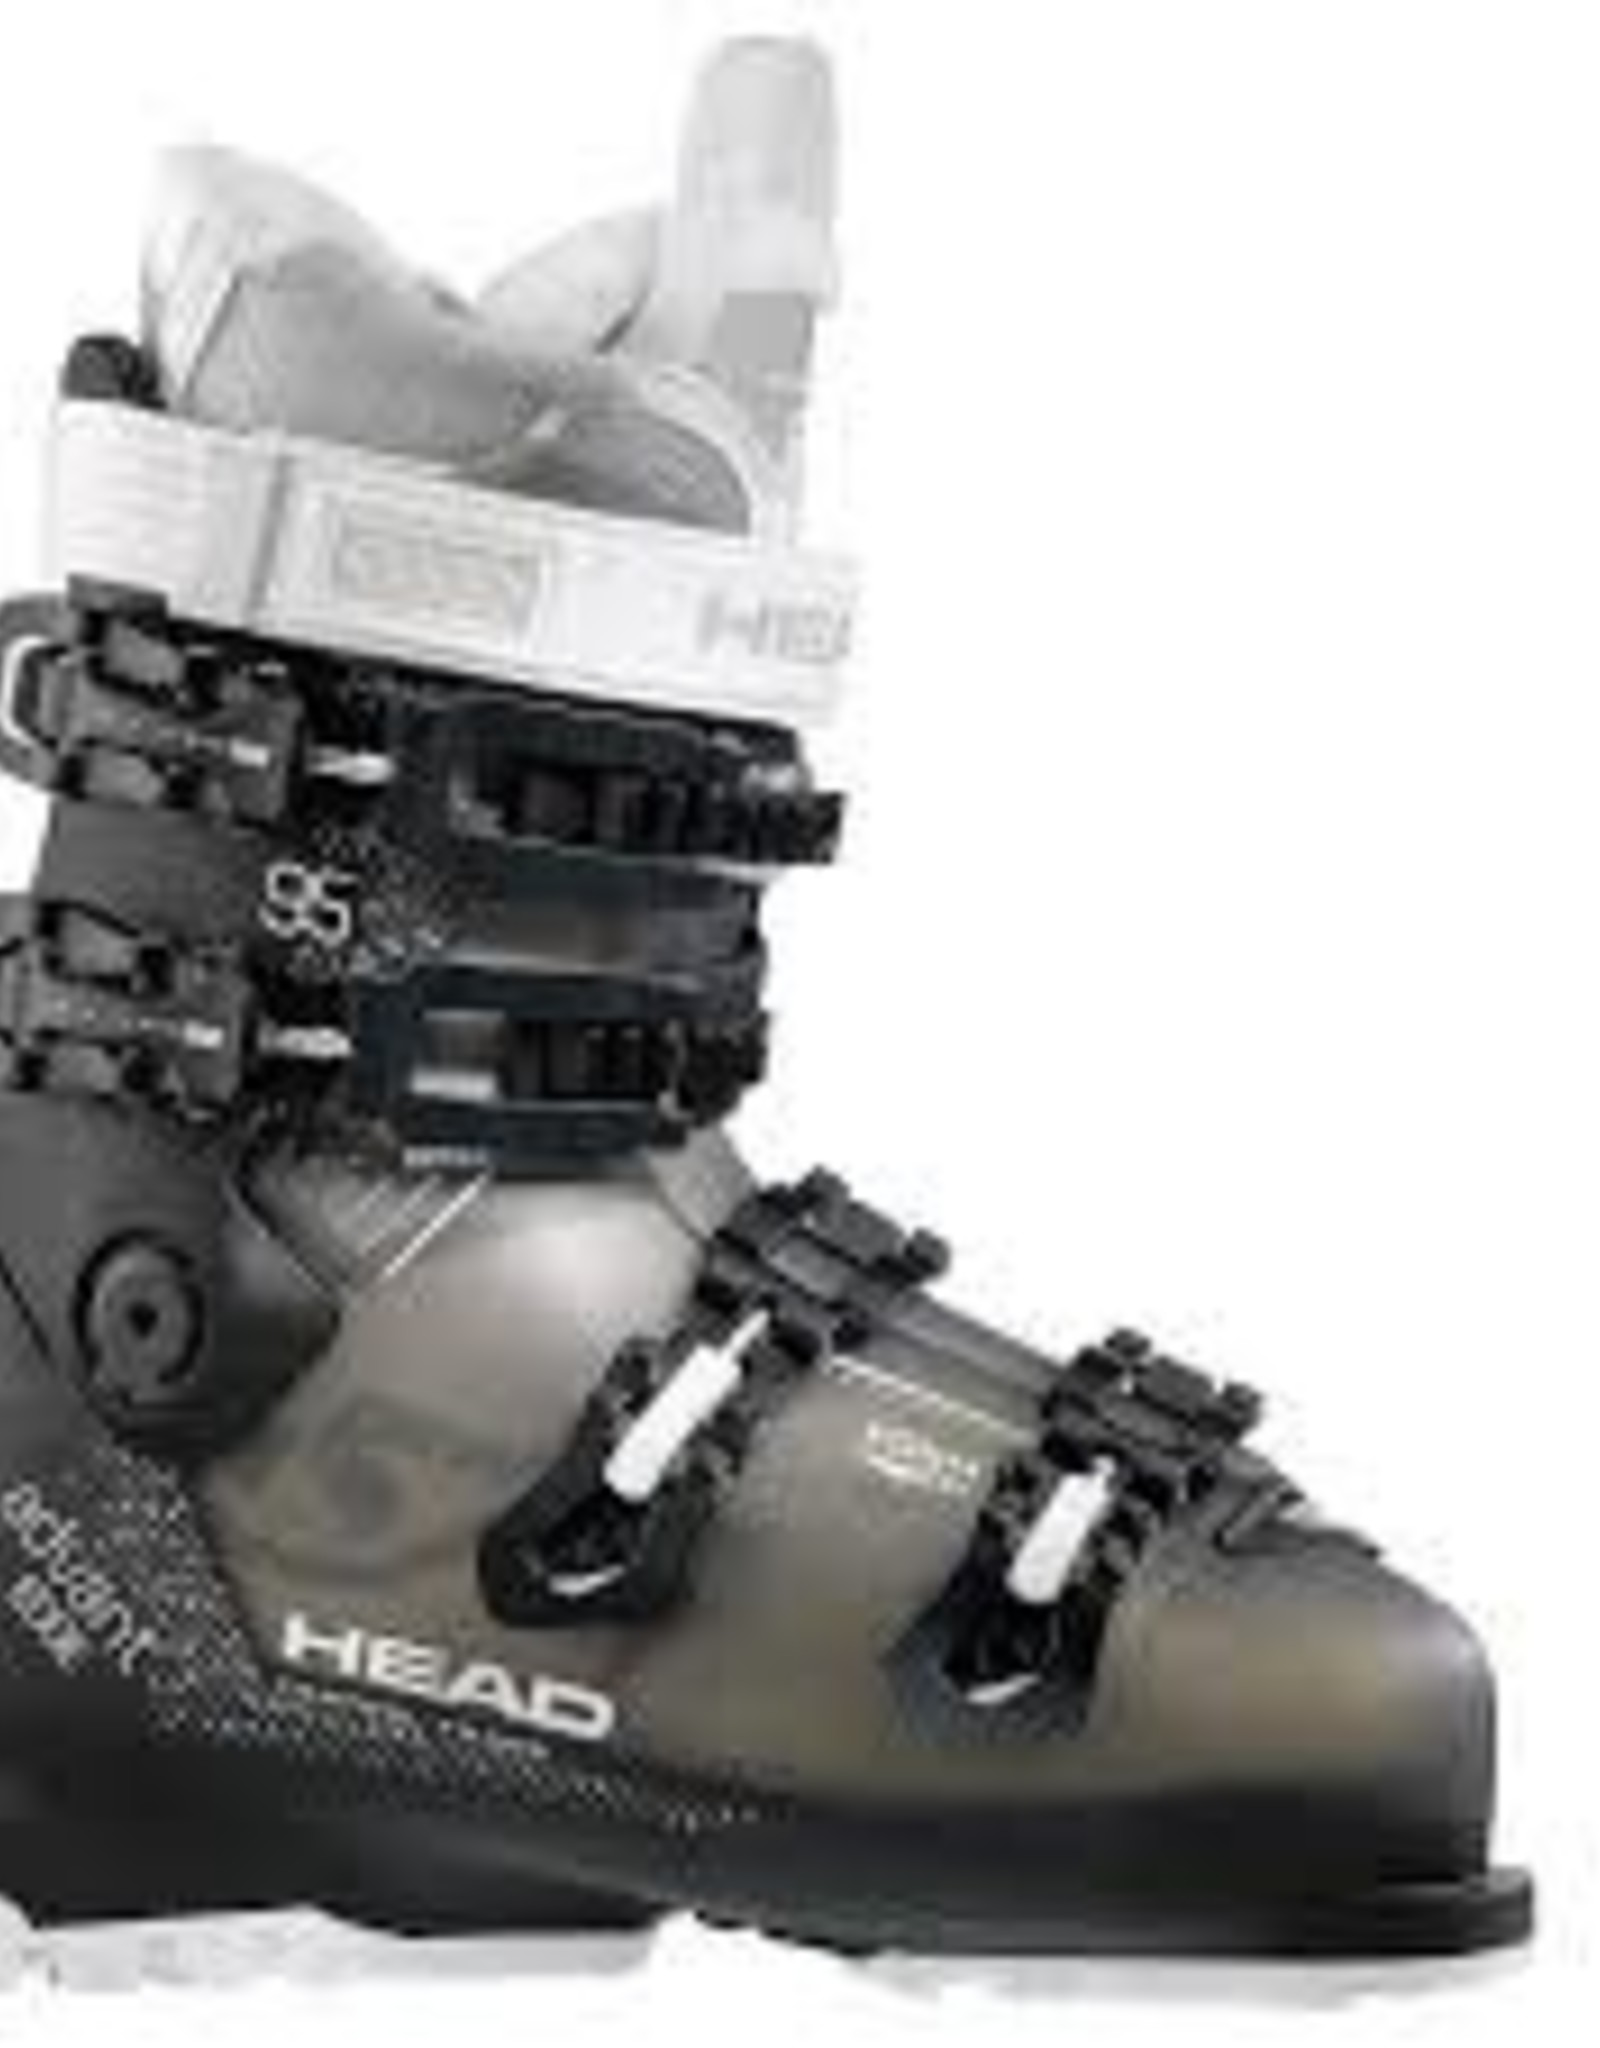 HEAD HEAD Ski Boots ADVANT EDGE 95 W (18/19)